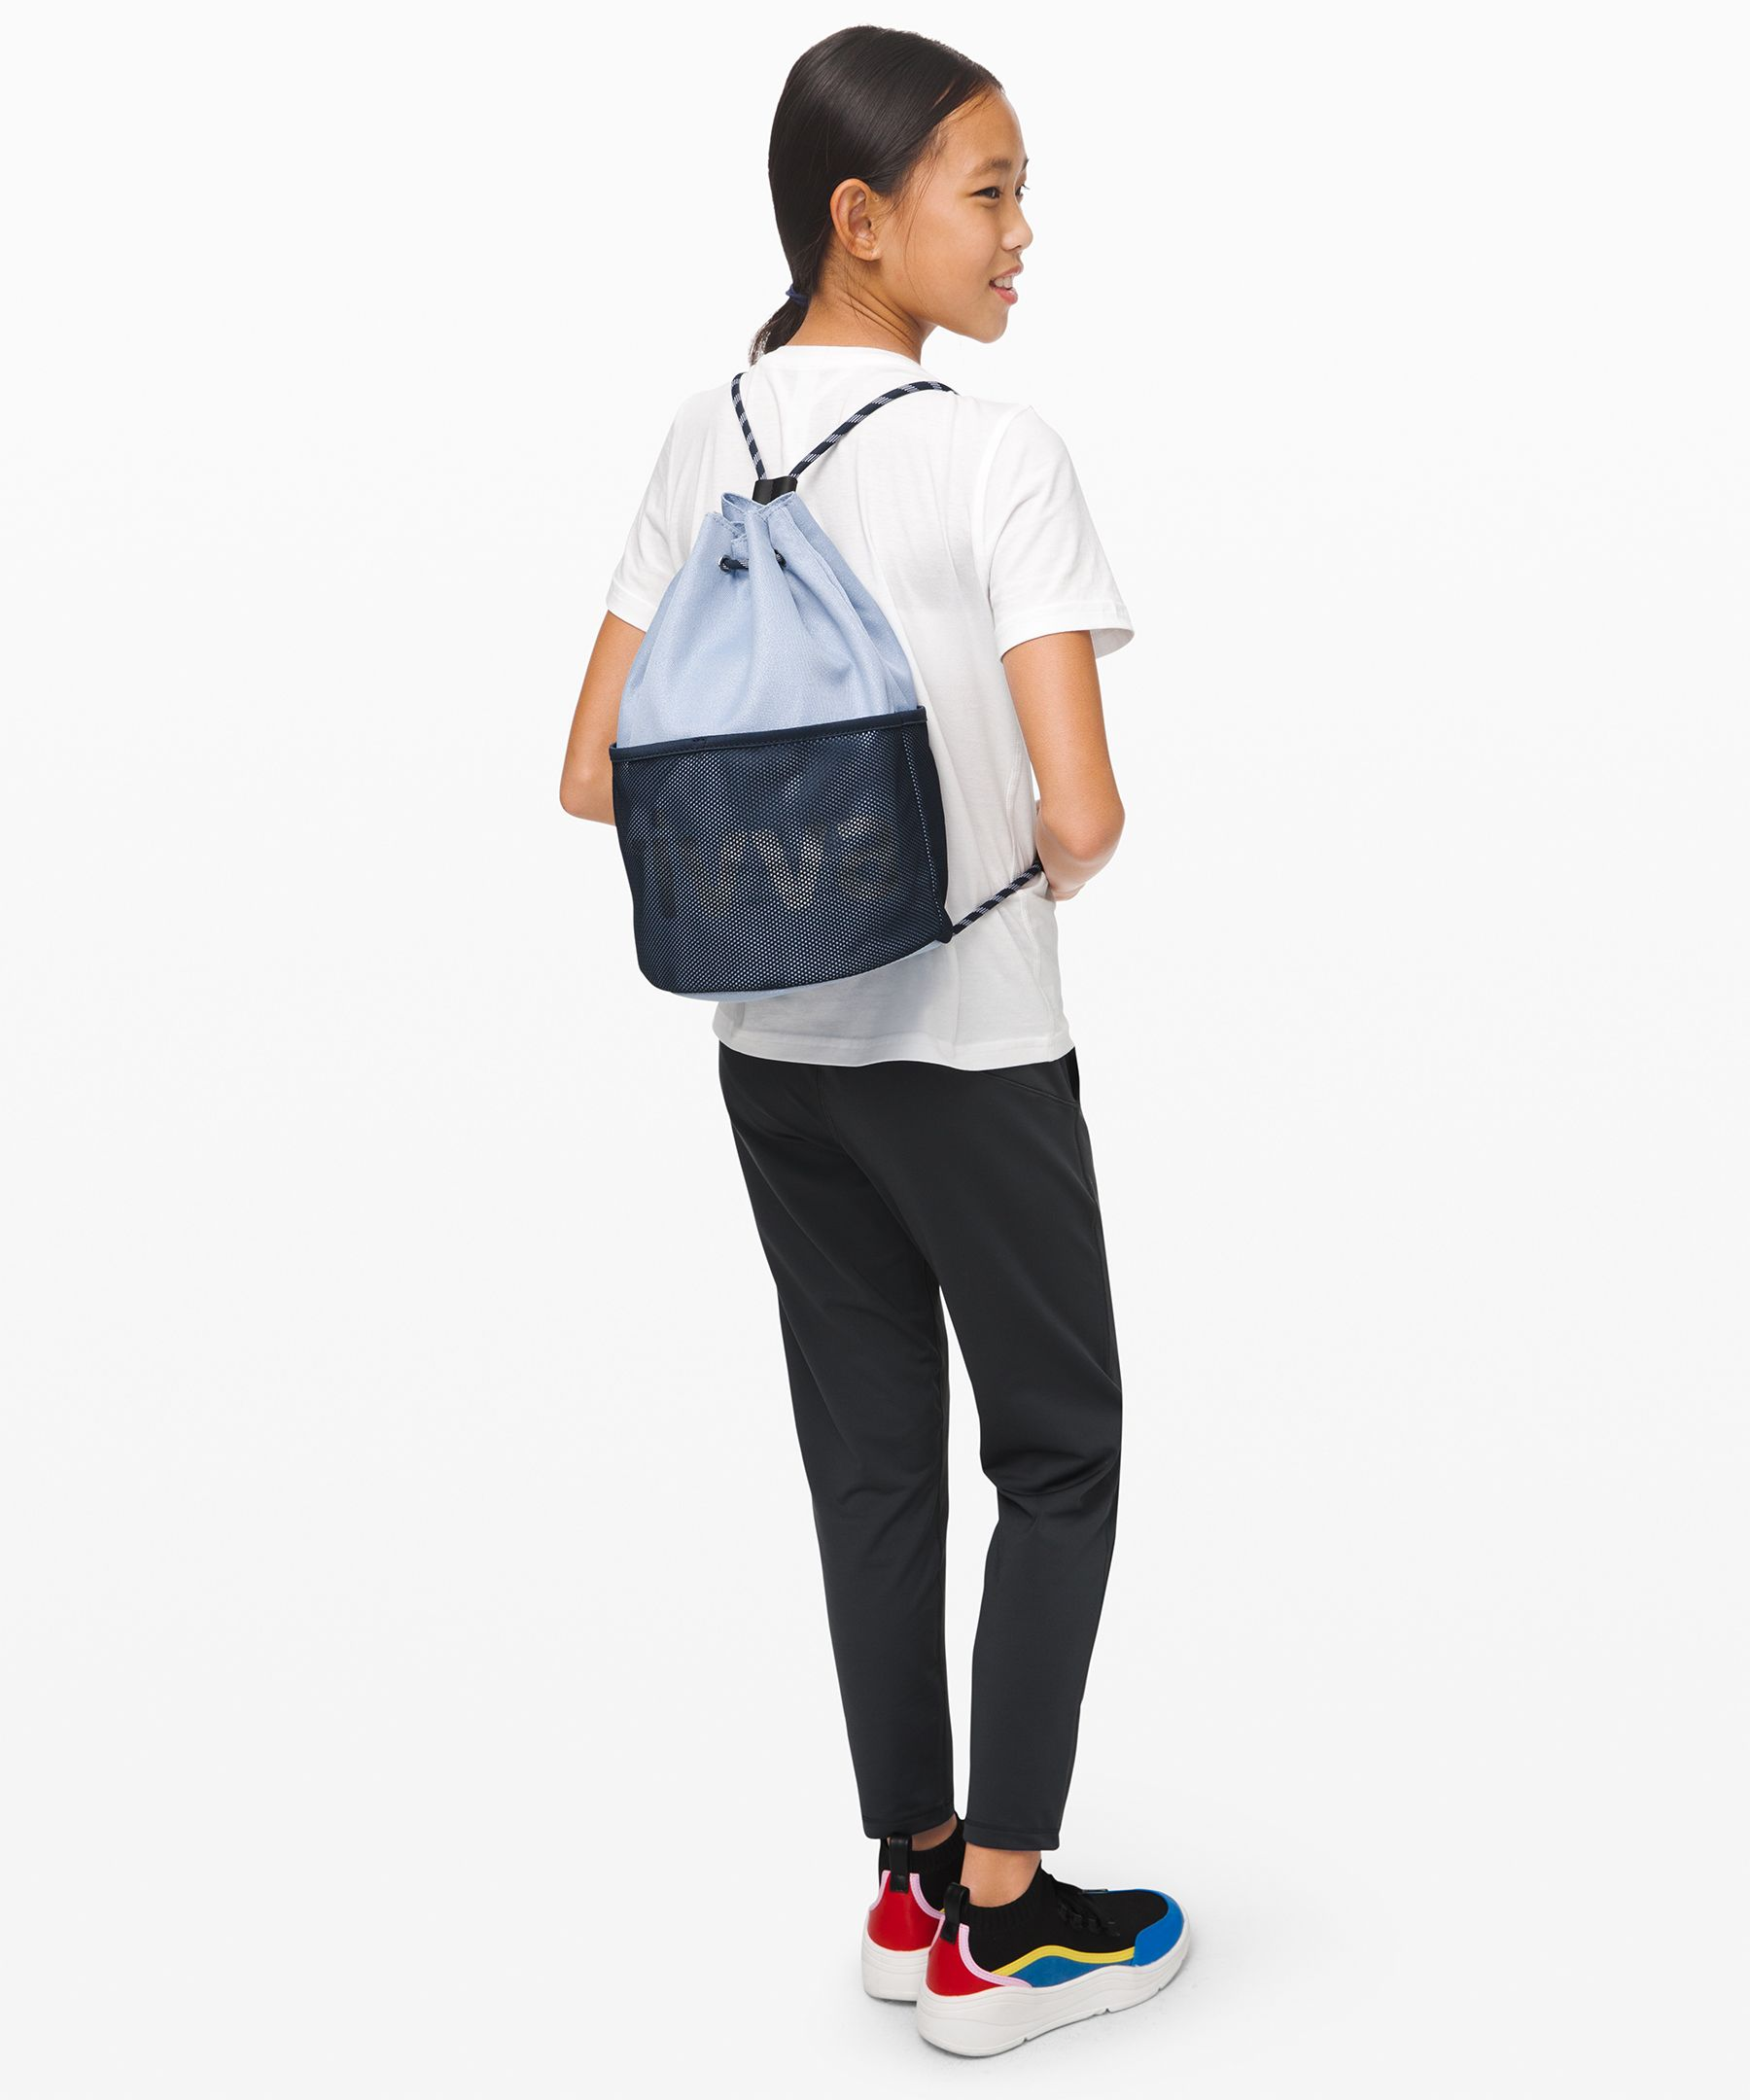 Send her off ready for  adventure with this cinchable  bag designed with plenty of  storage options and space for  her water bottle.